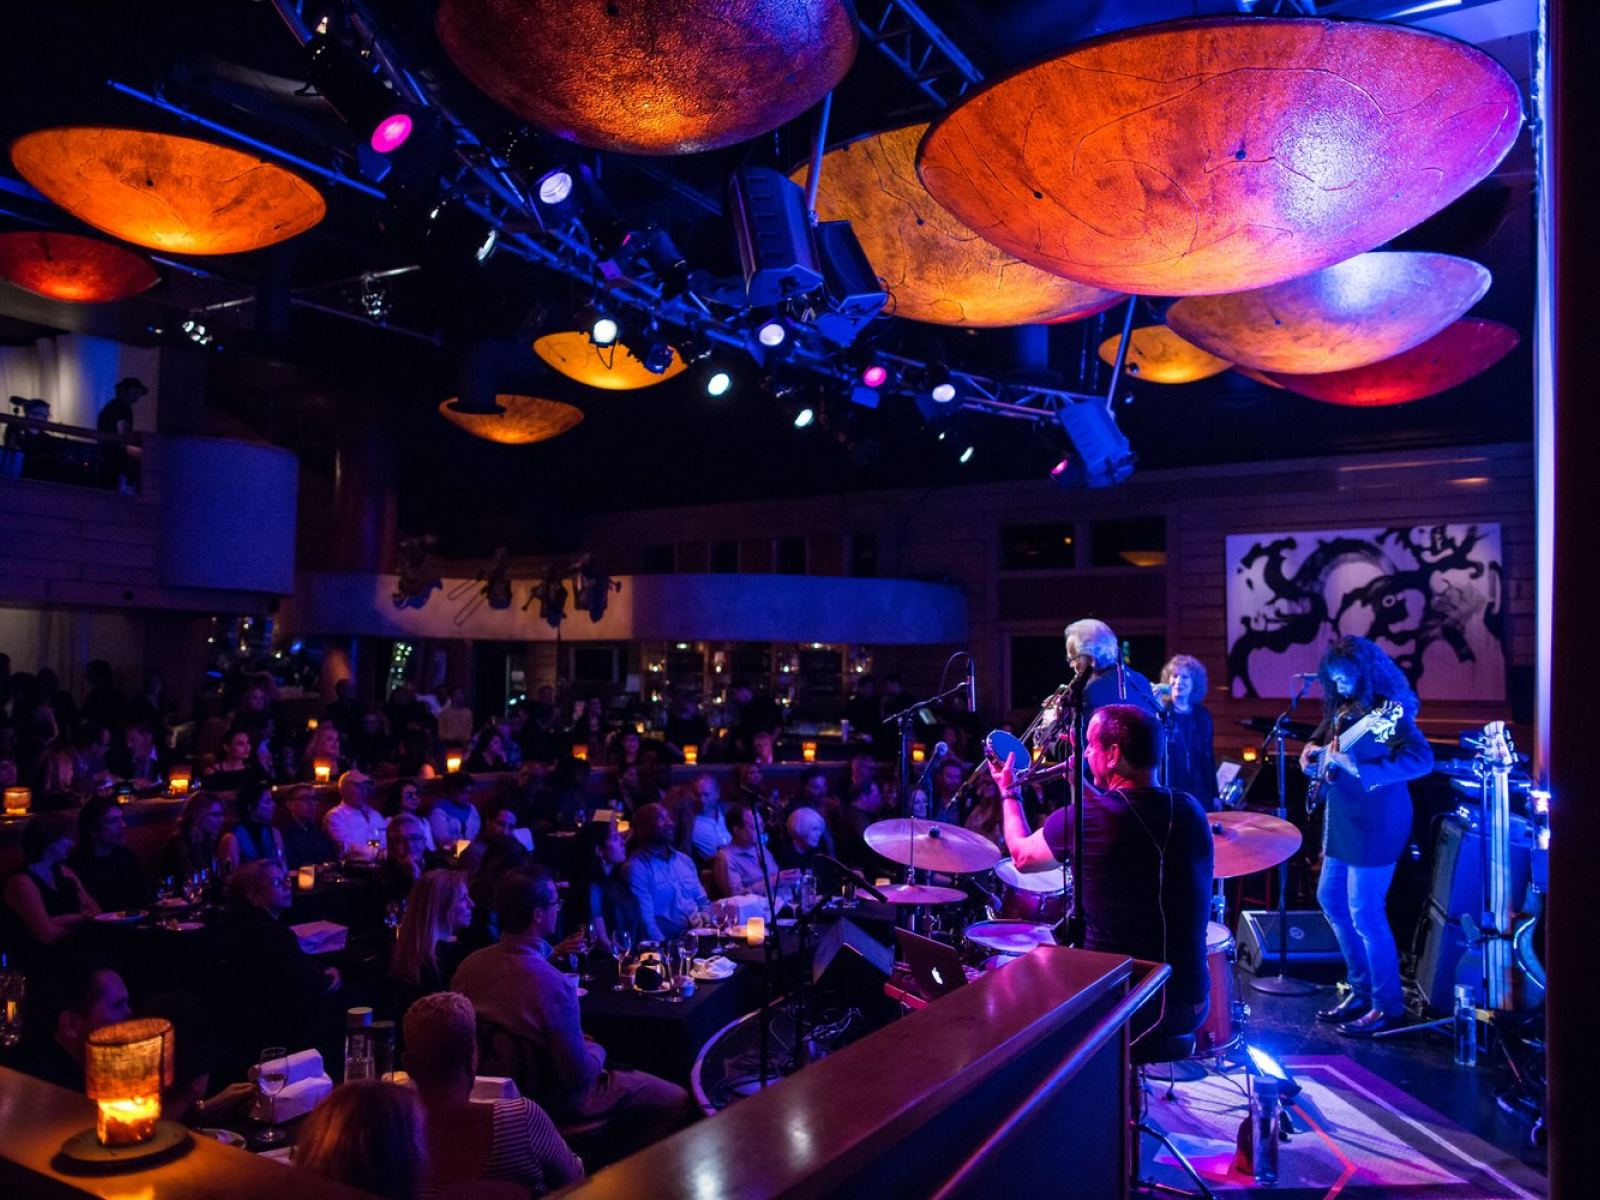 Herb Alpert on stage with Lani Hall at Vibrato Grill in Bel-Air